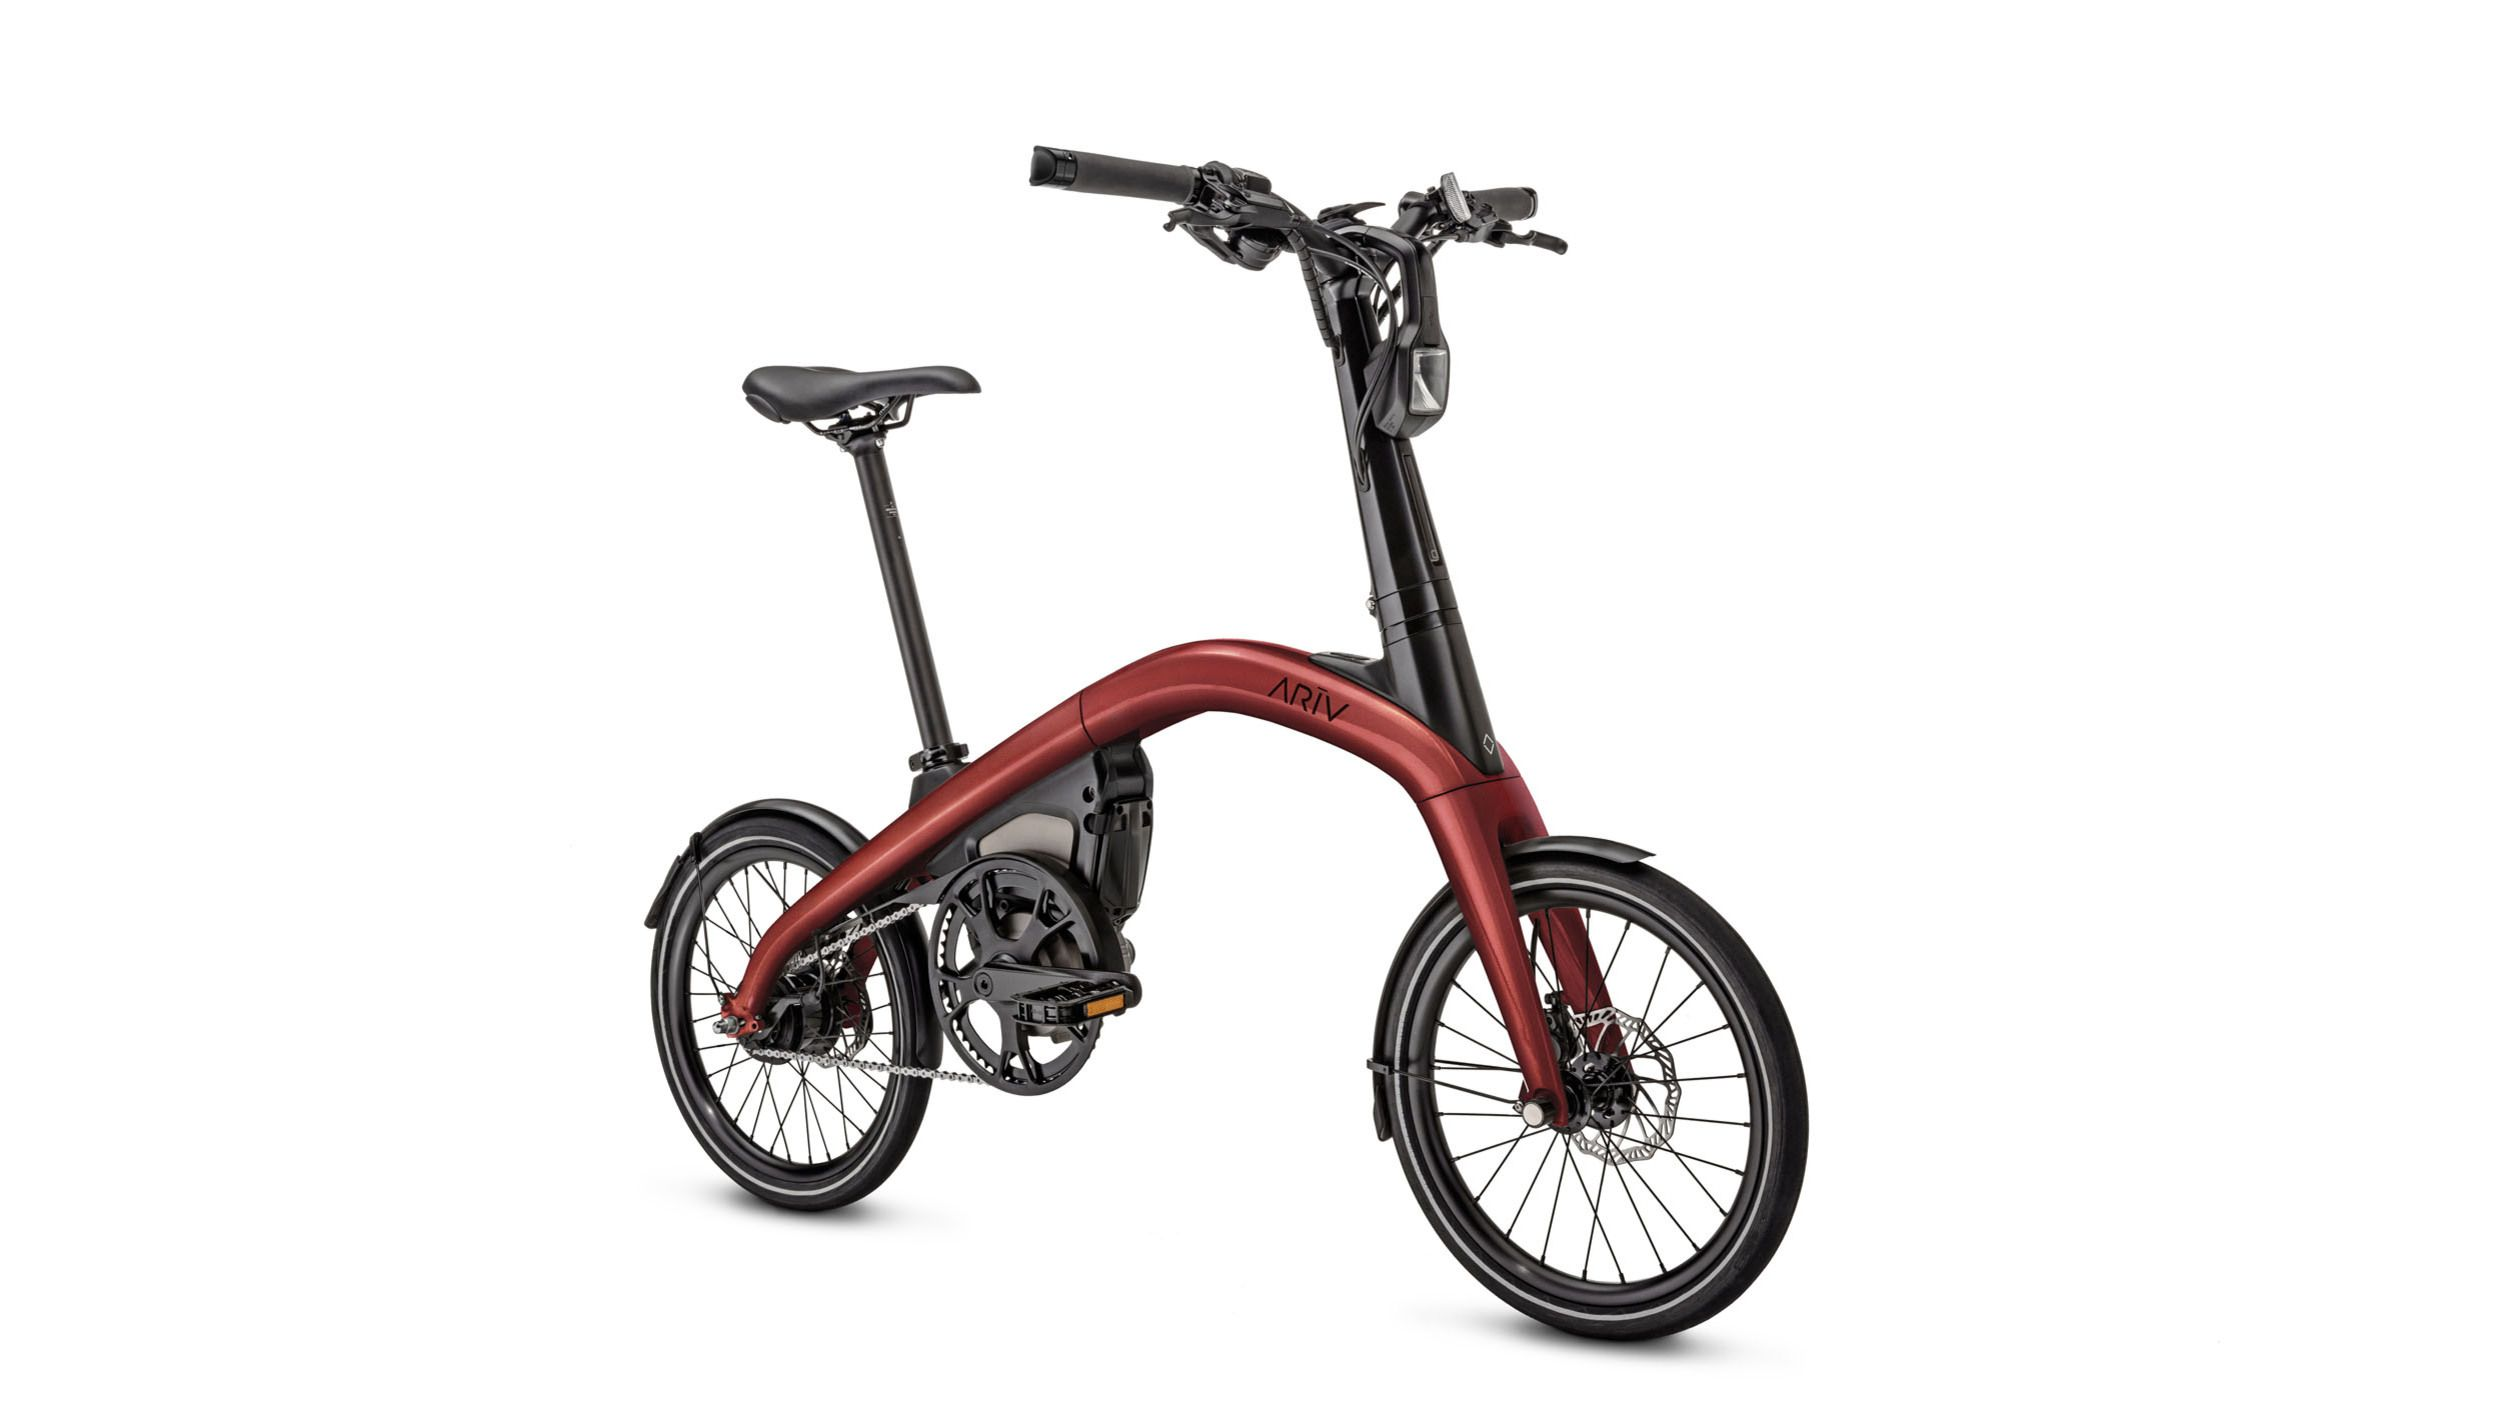 GM launches electric bicycle brand Ariv, landing in European market this year